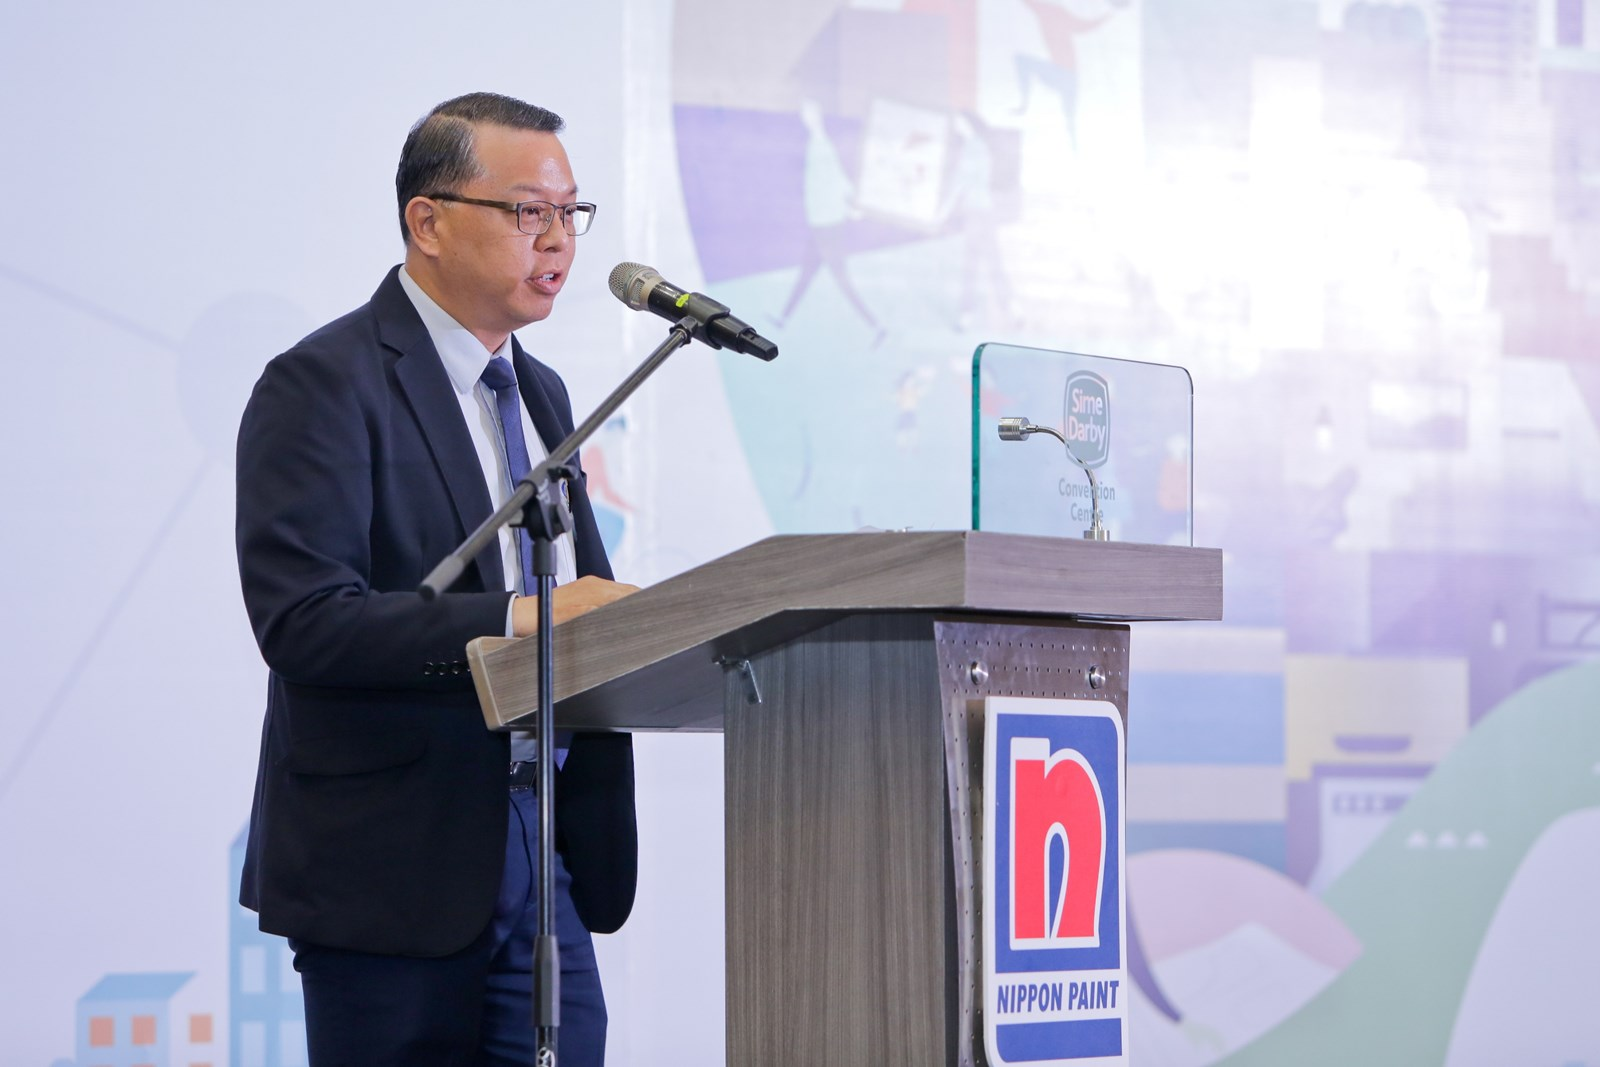 Edward Chong Sin Kiat, Managing Director of IJM Land Berhad